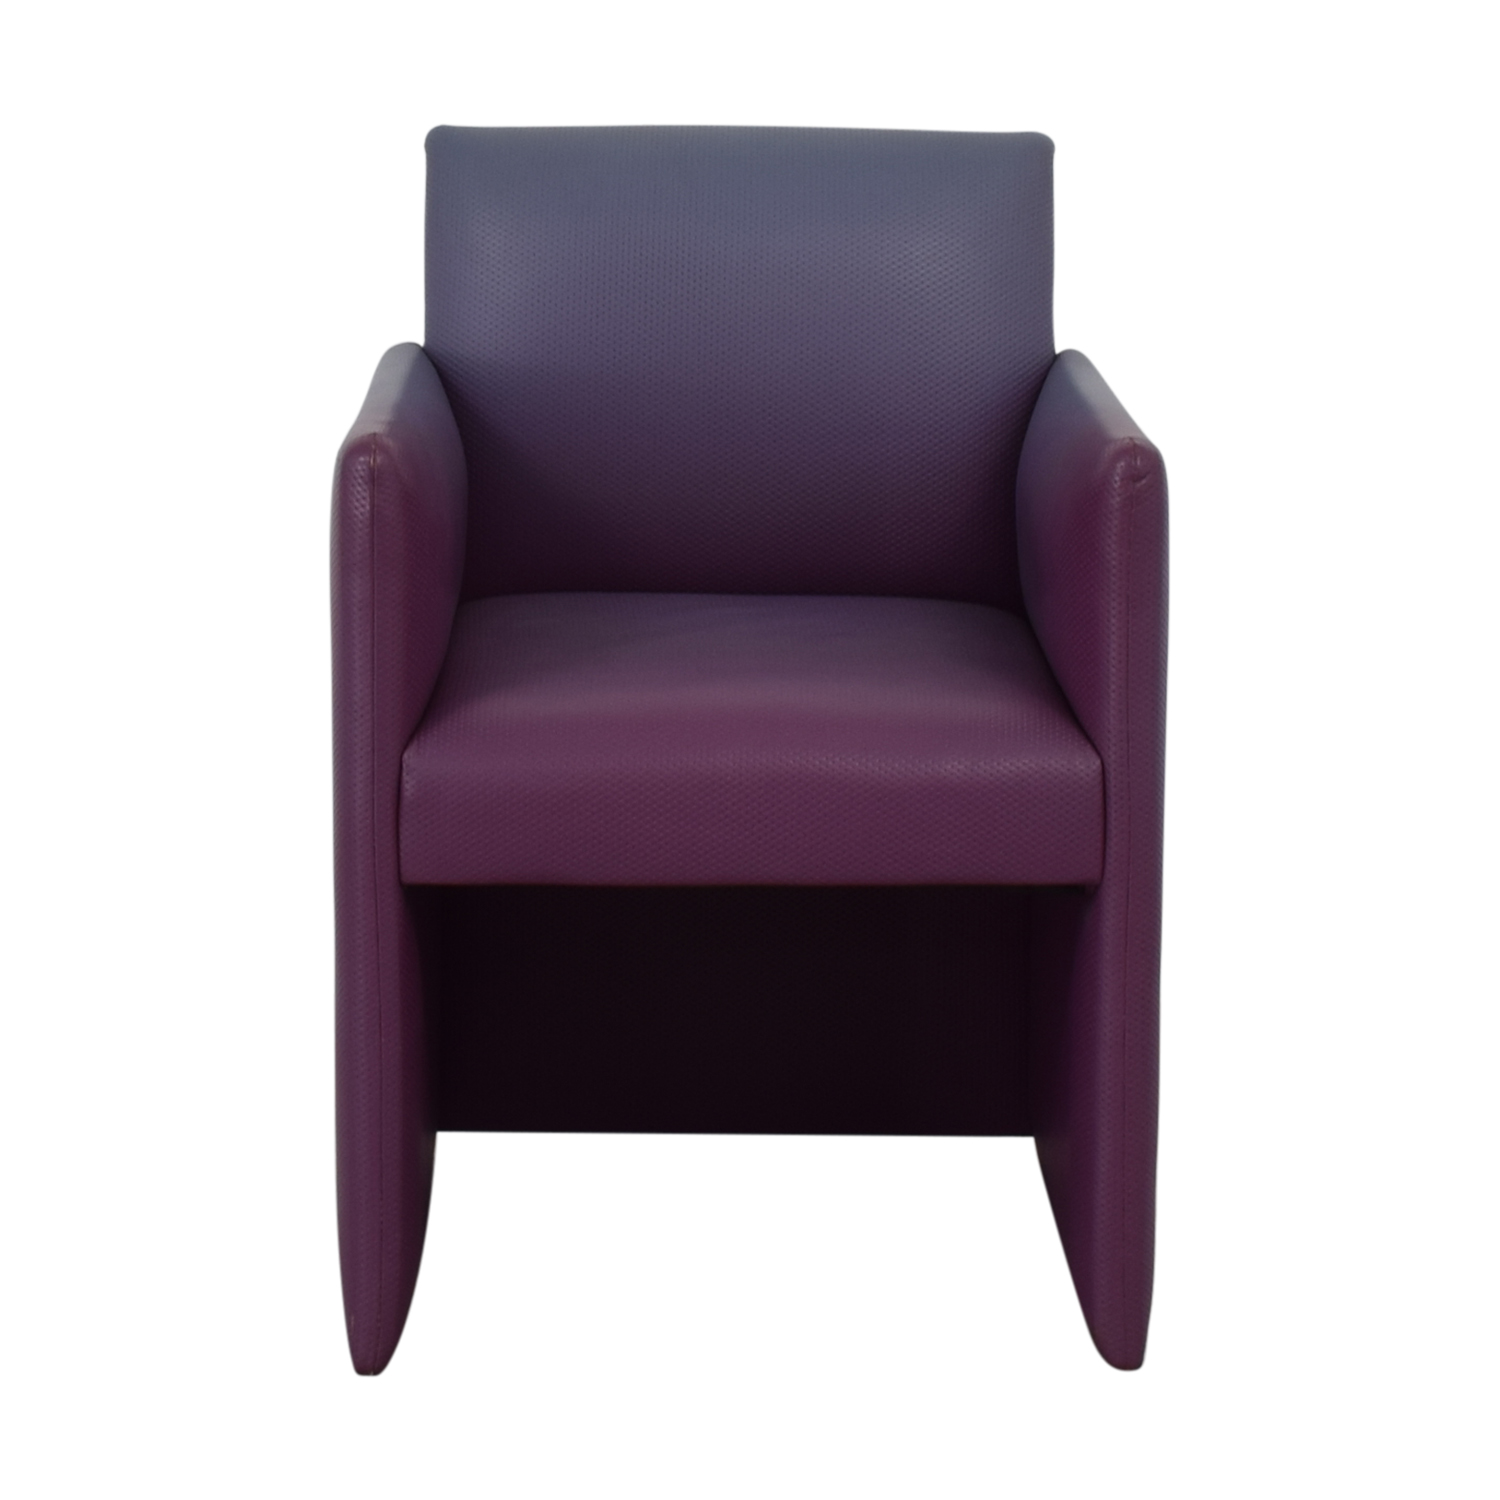 shop Furniture Masters Purple Accent Chair Furniture Masters